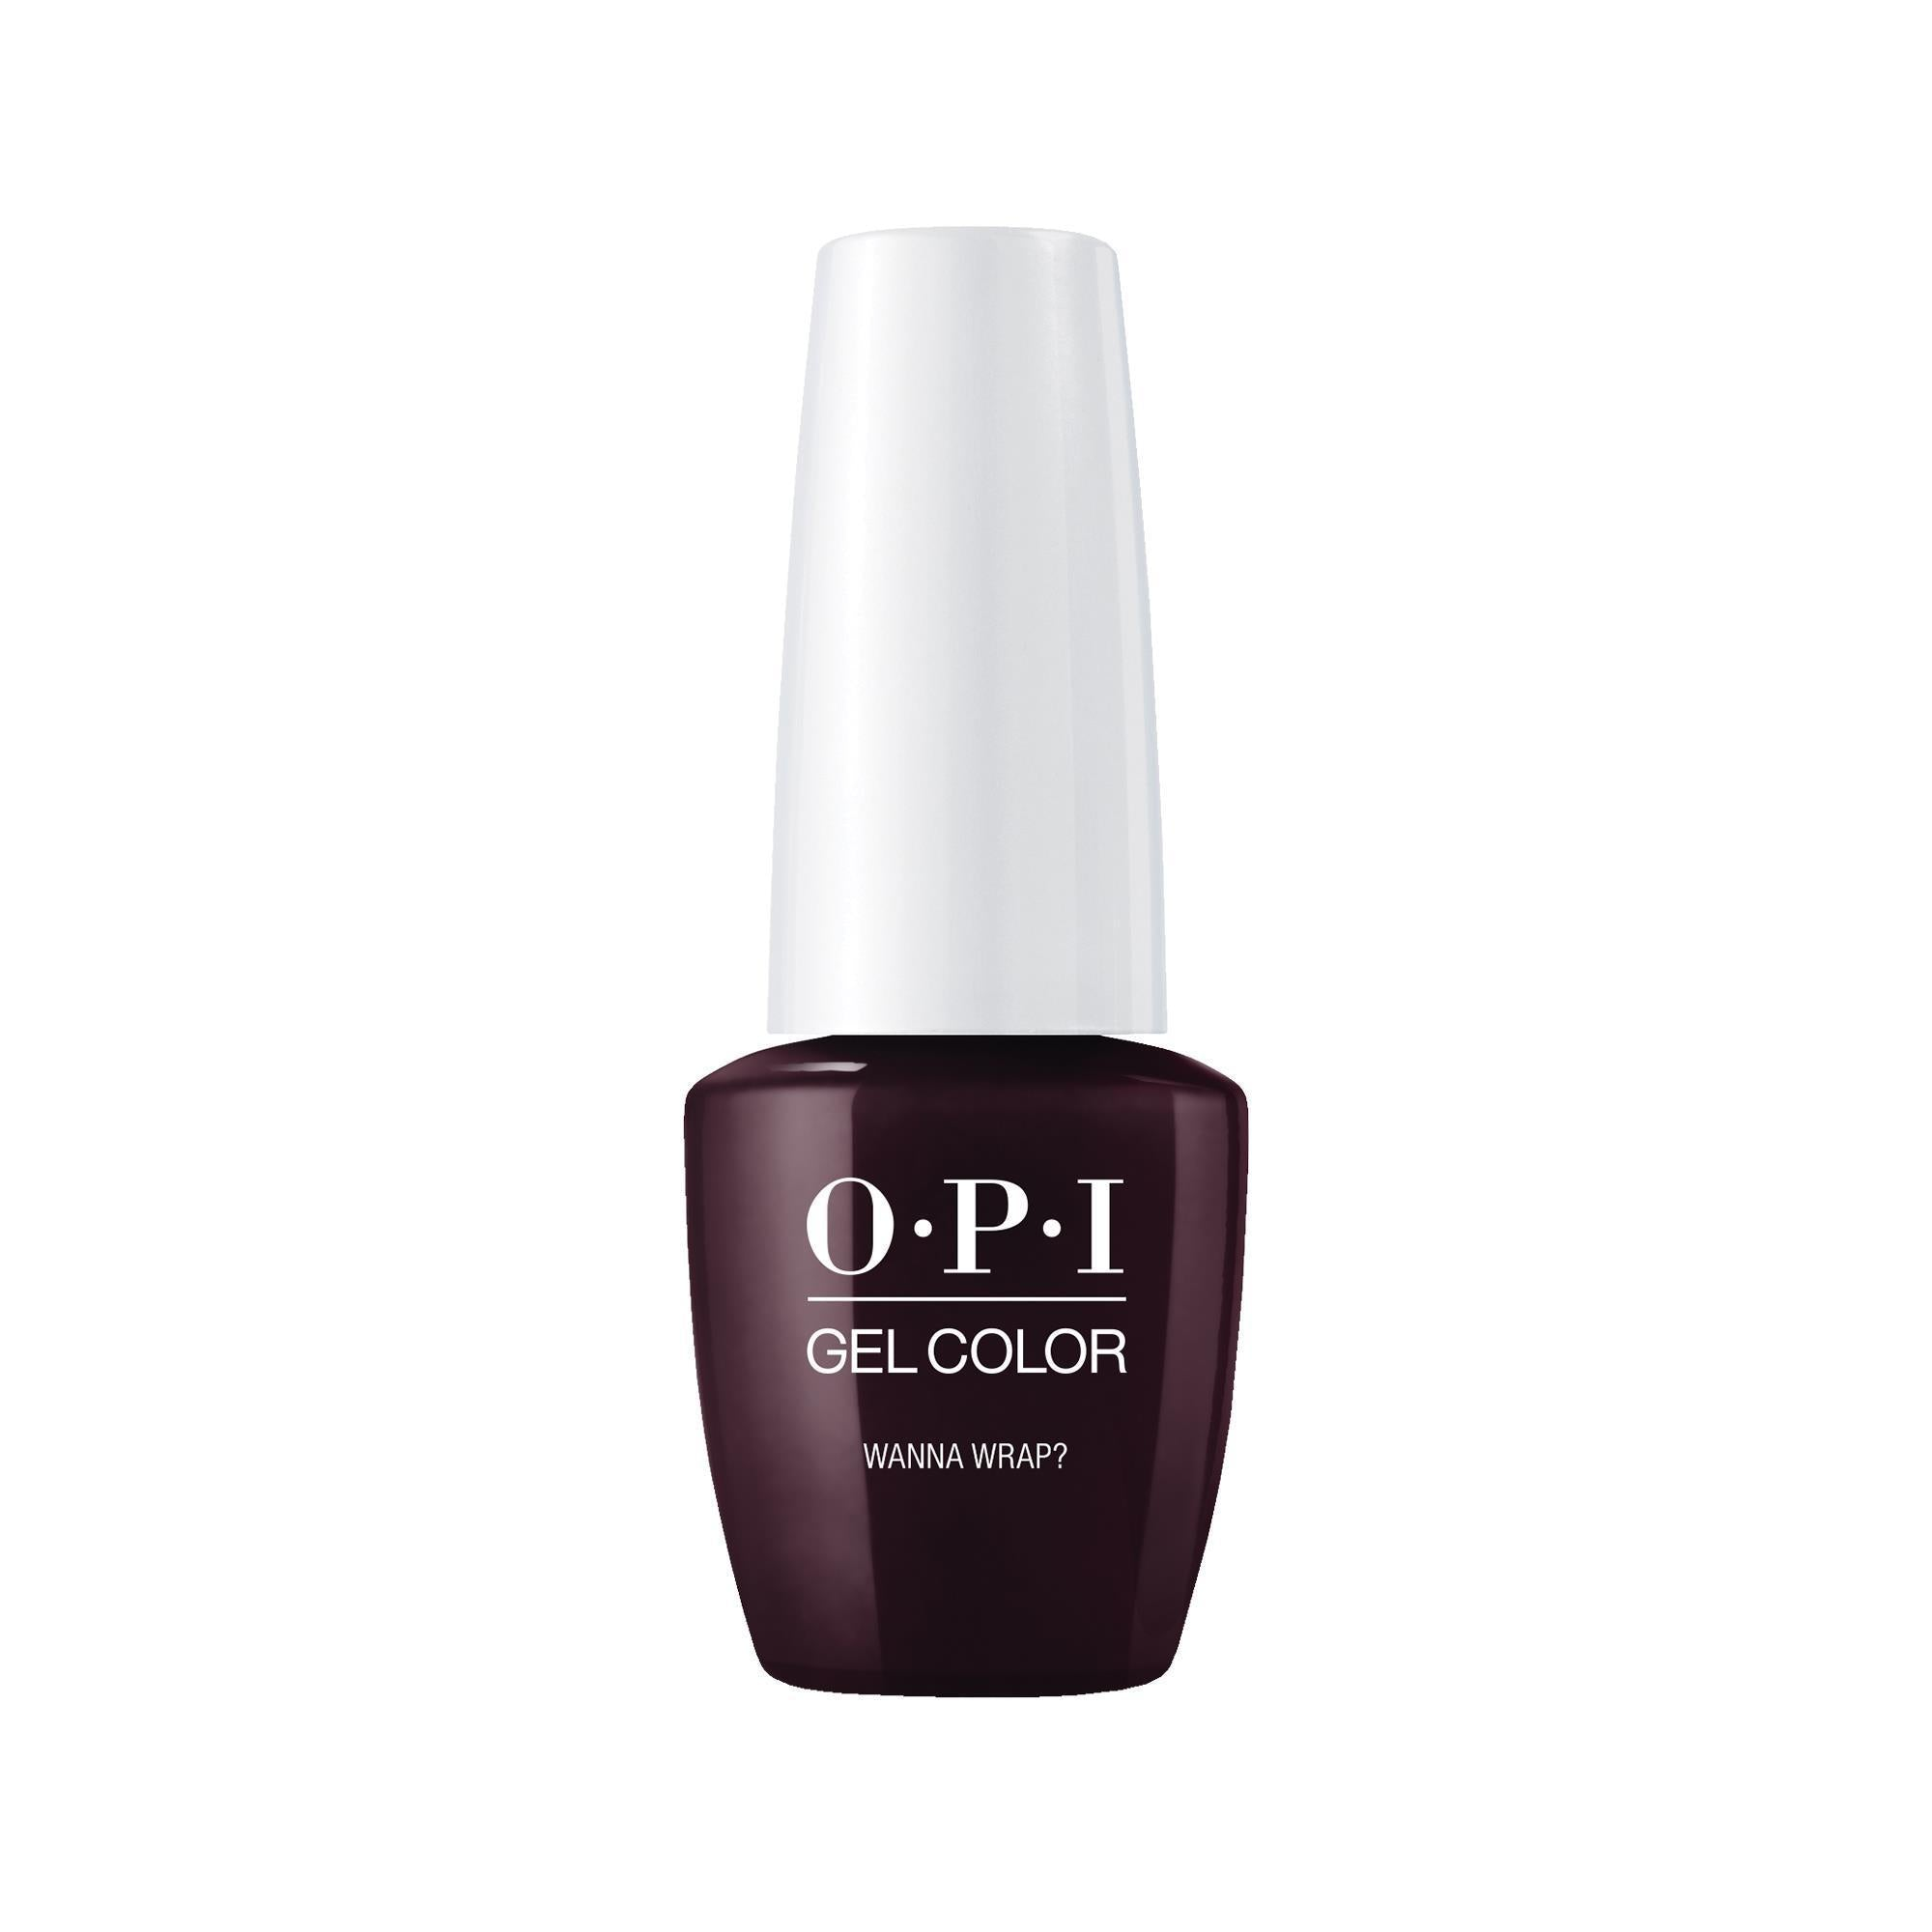 Gel Lacquer OPI Gel Color Wanna Wrap?